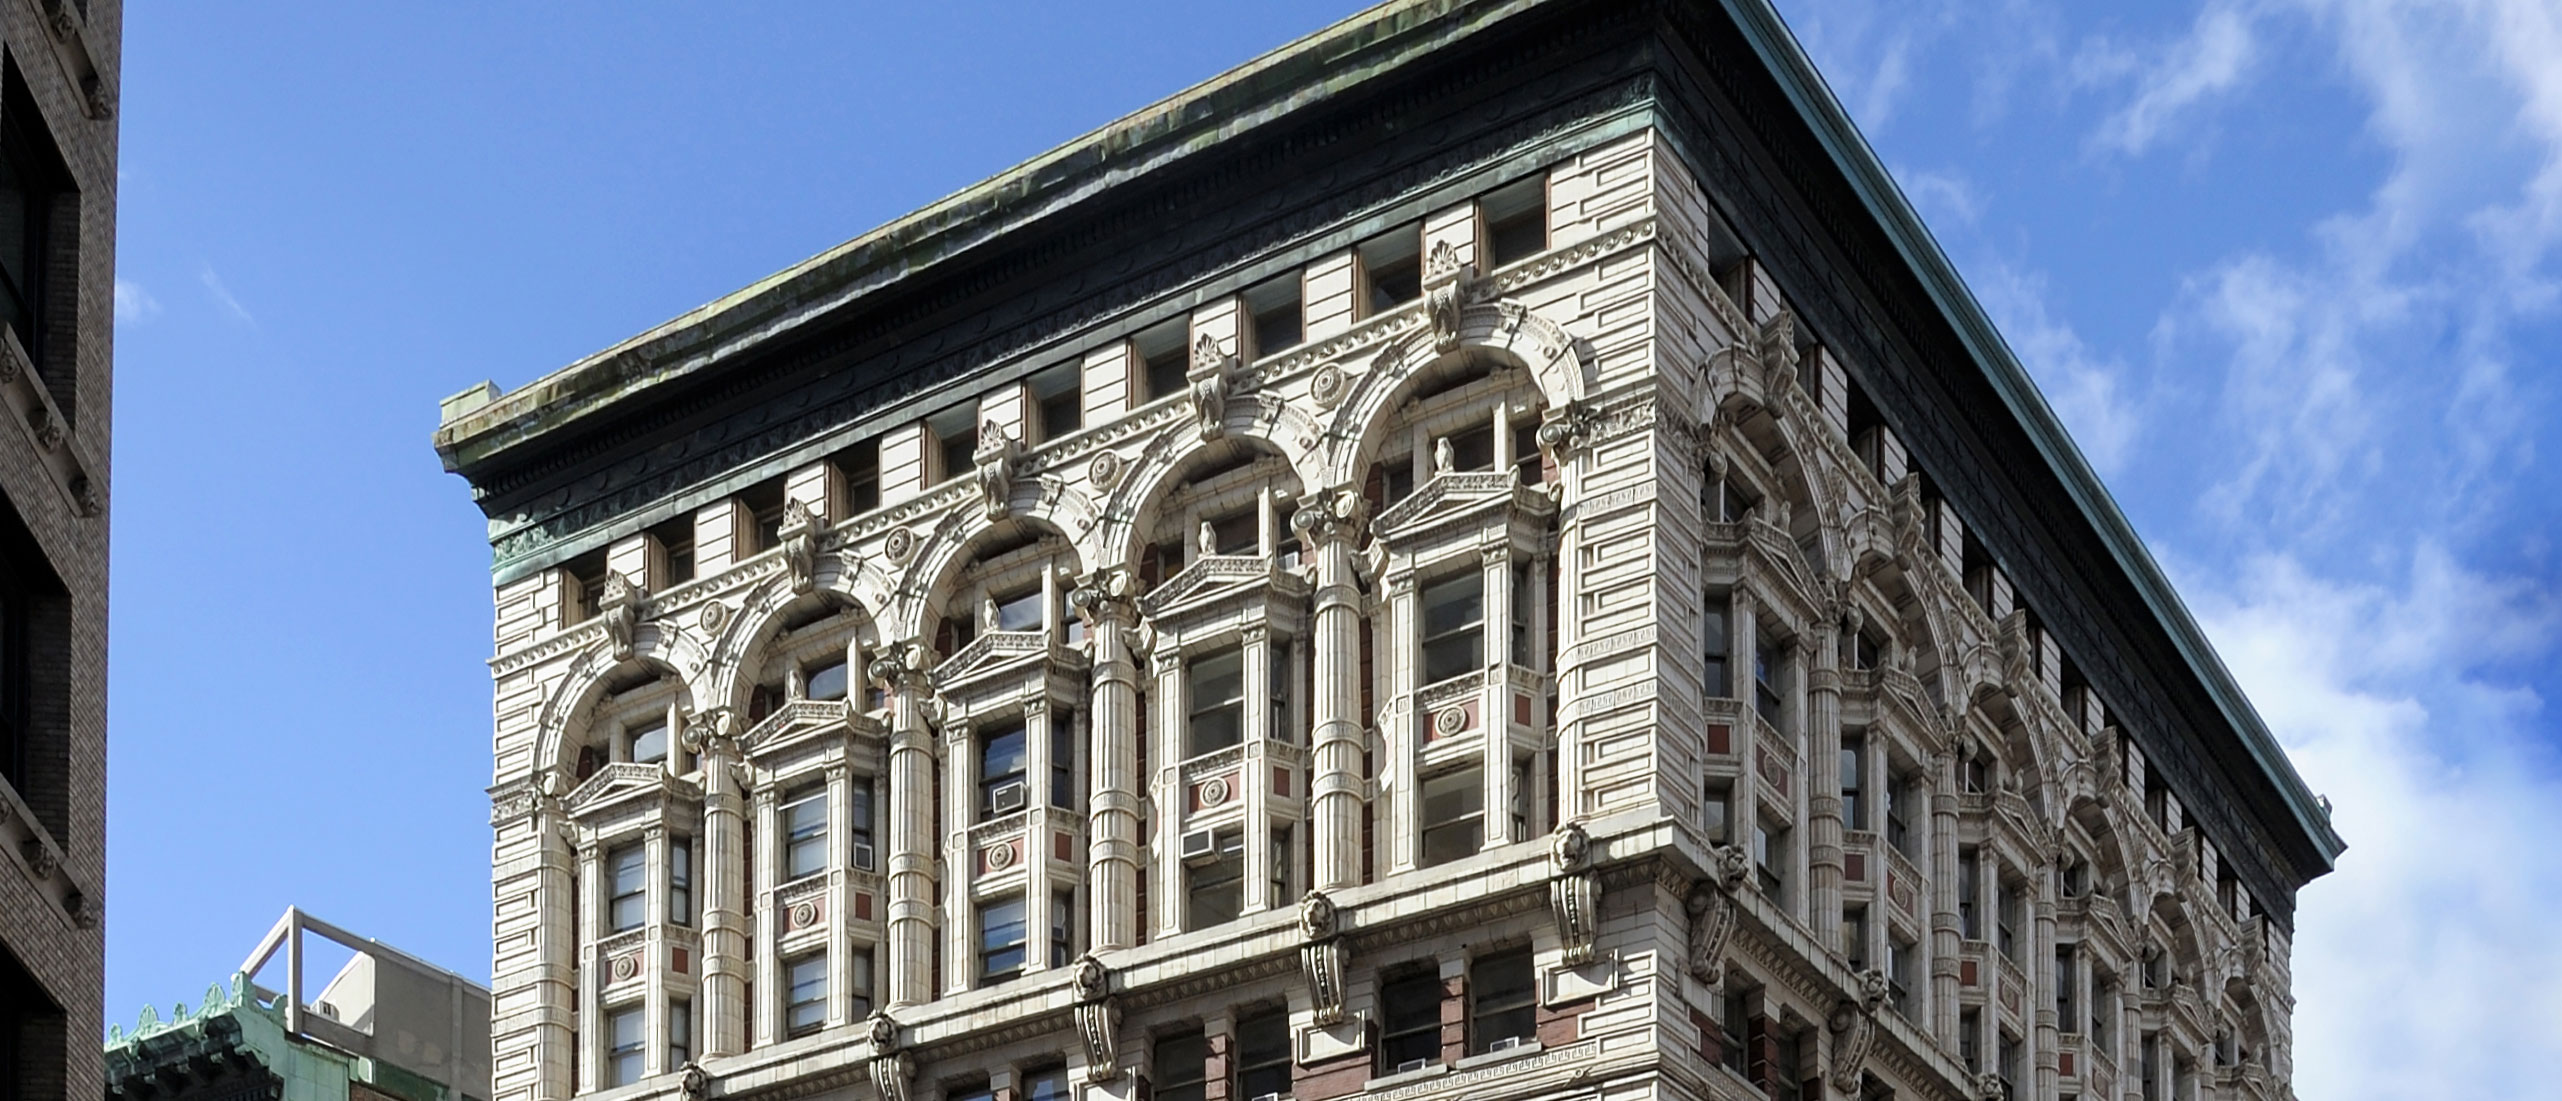 Bruce Price: Inventive Architect of the St. James Building